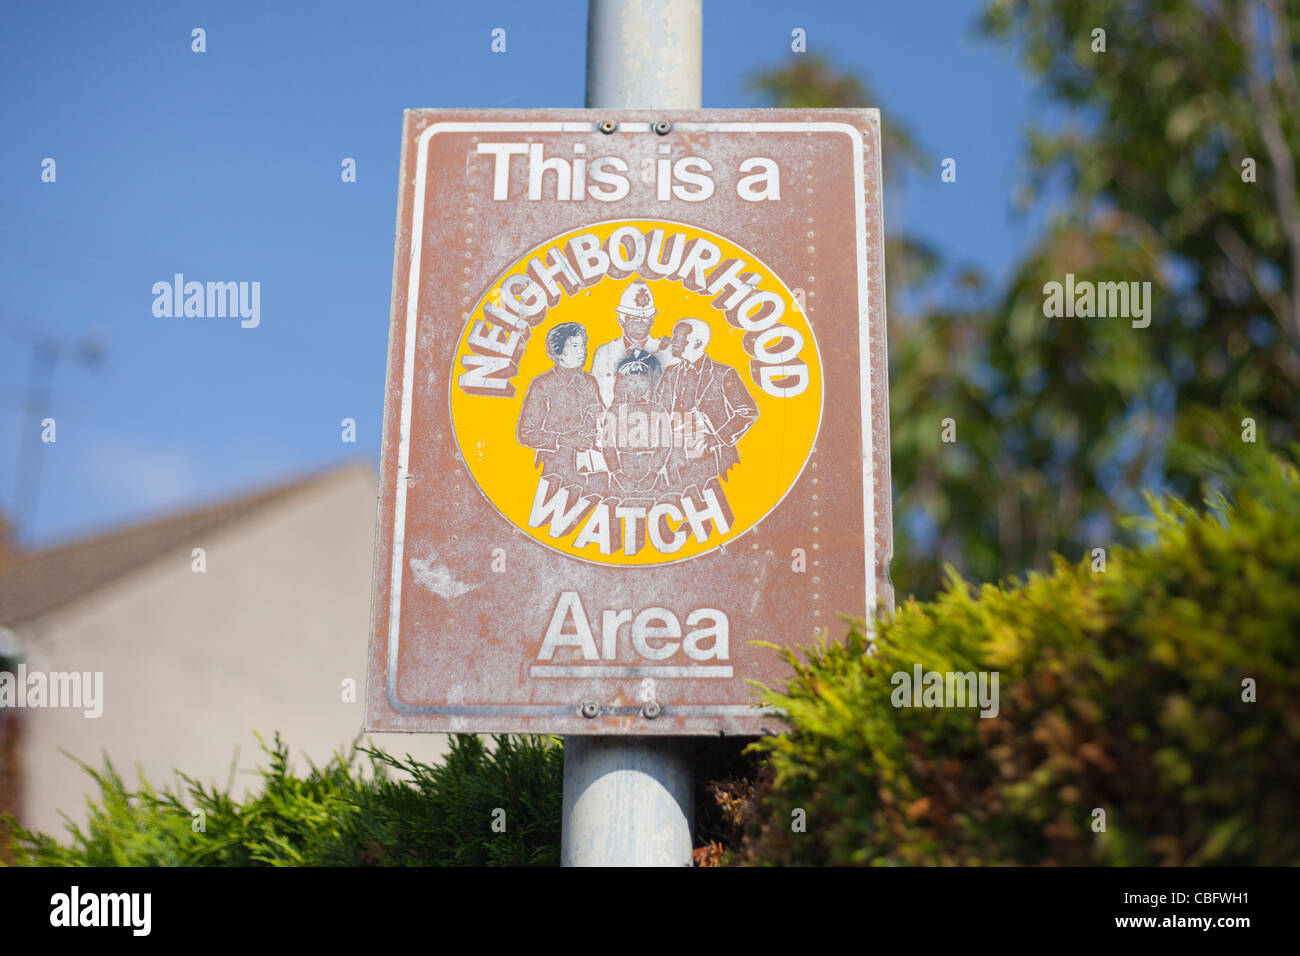 A neighbourhood watch signpost in an English country town. - Stock Image